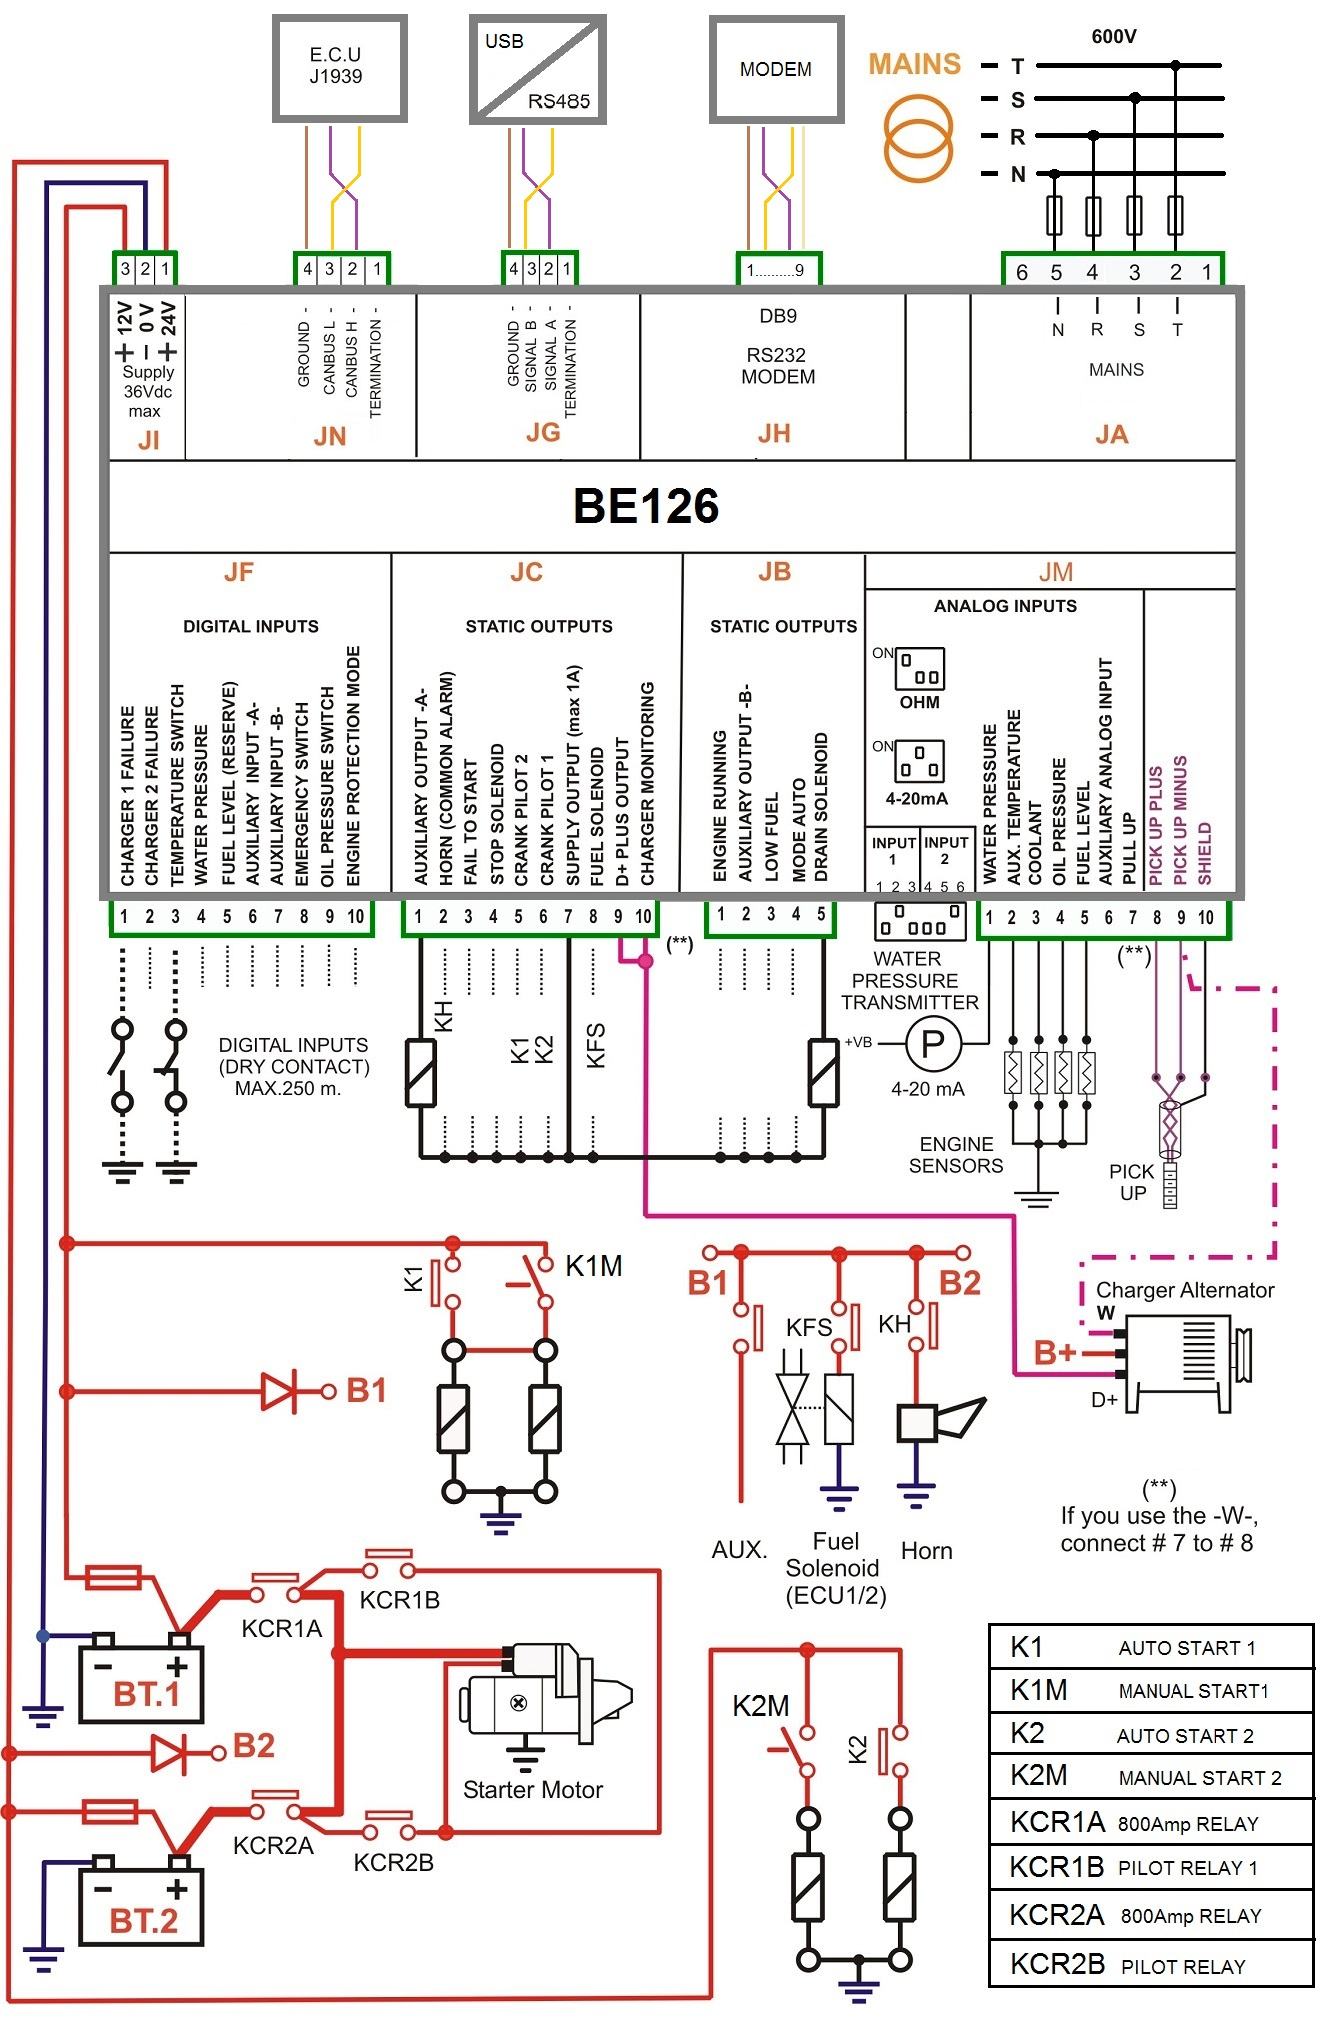 Fire Pump Controller Wiring Diagram Genset Controller Floats For Pump  Control Ats Diagram 3 Wire Pump Pressure Control